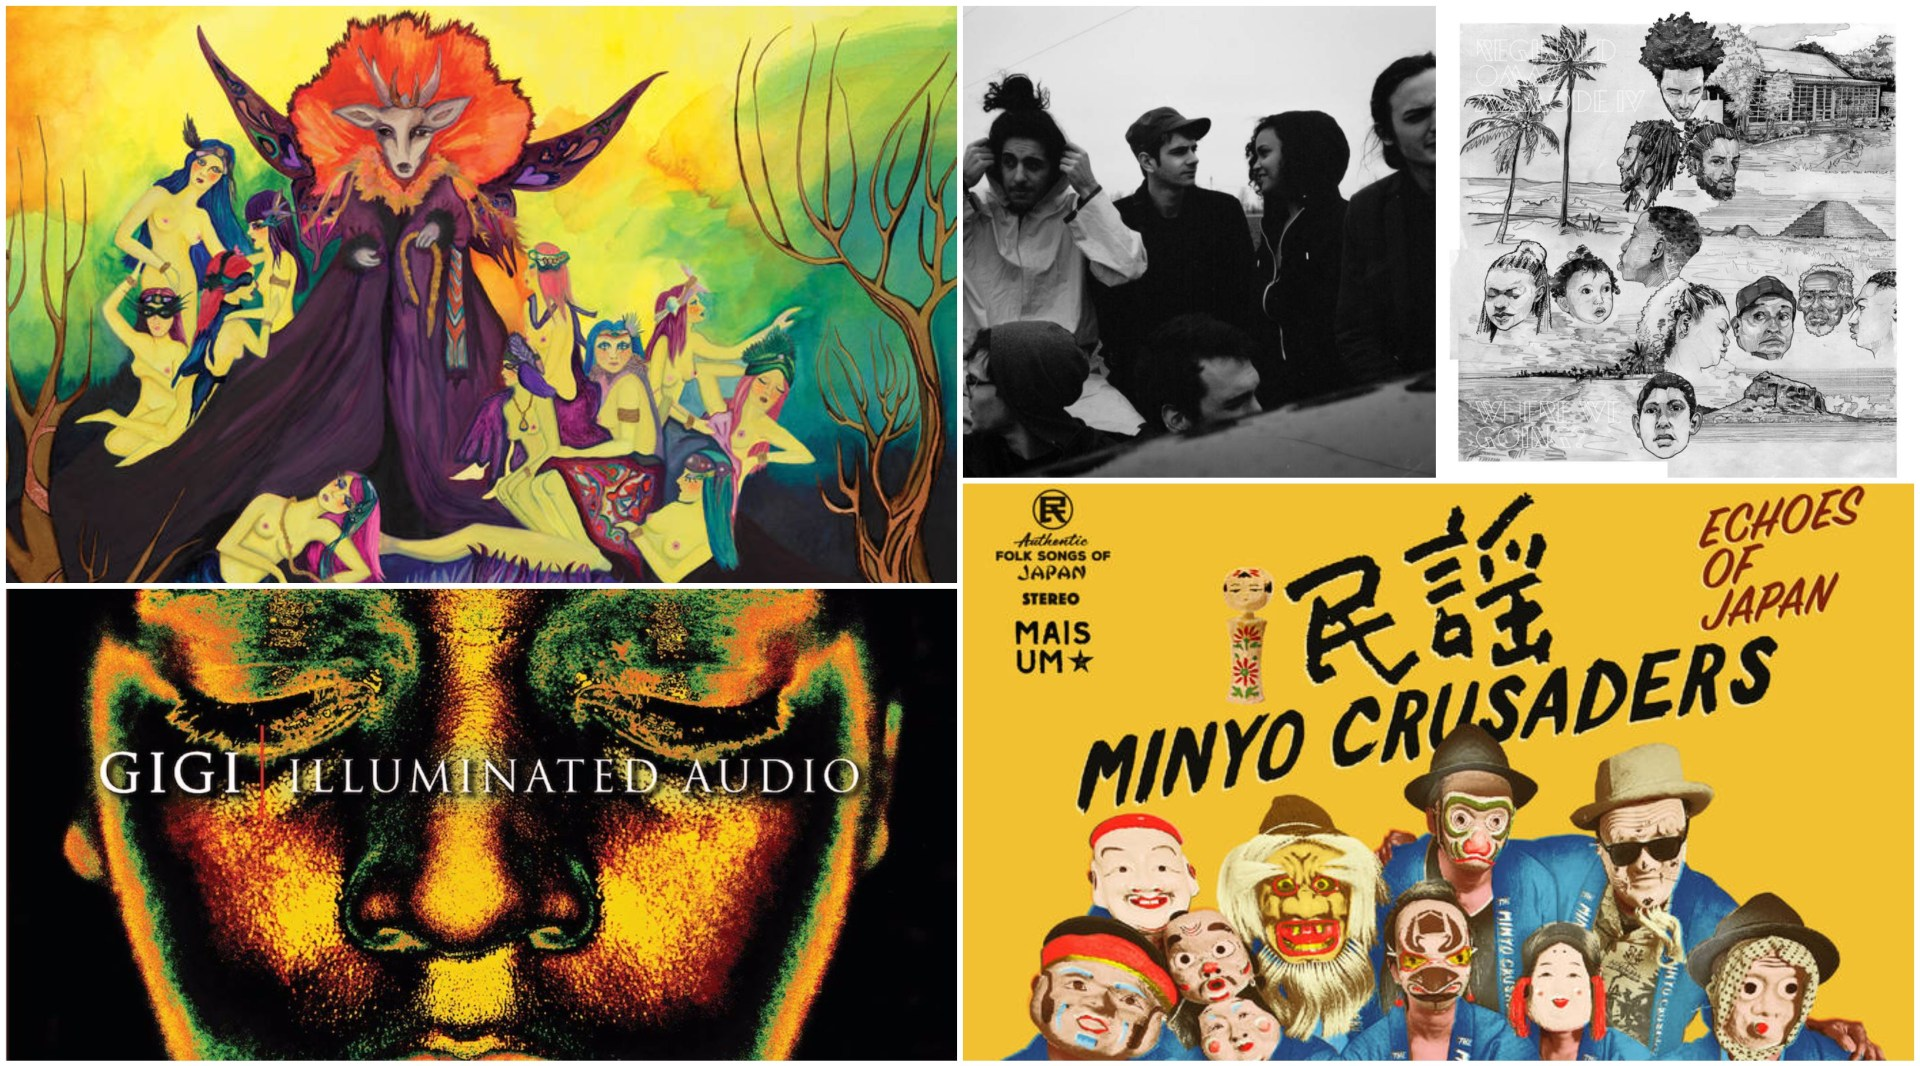 "New albums from Schemes, Reginald Omas Mamode IV, Gigi ""Illuminated Audio, Greg Foat, and Minyo Crusaders."